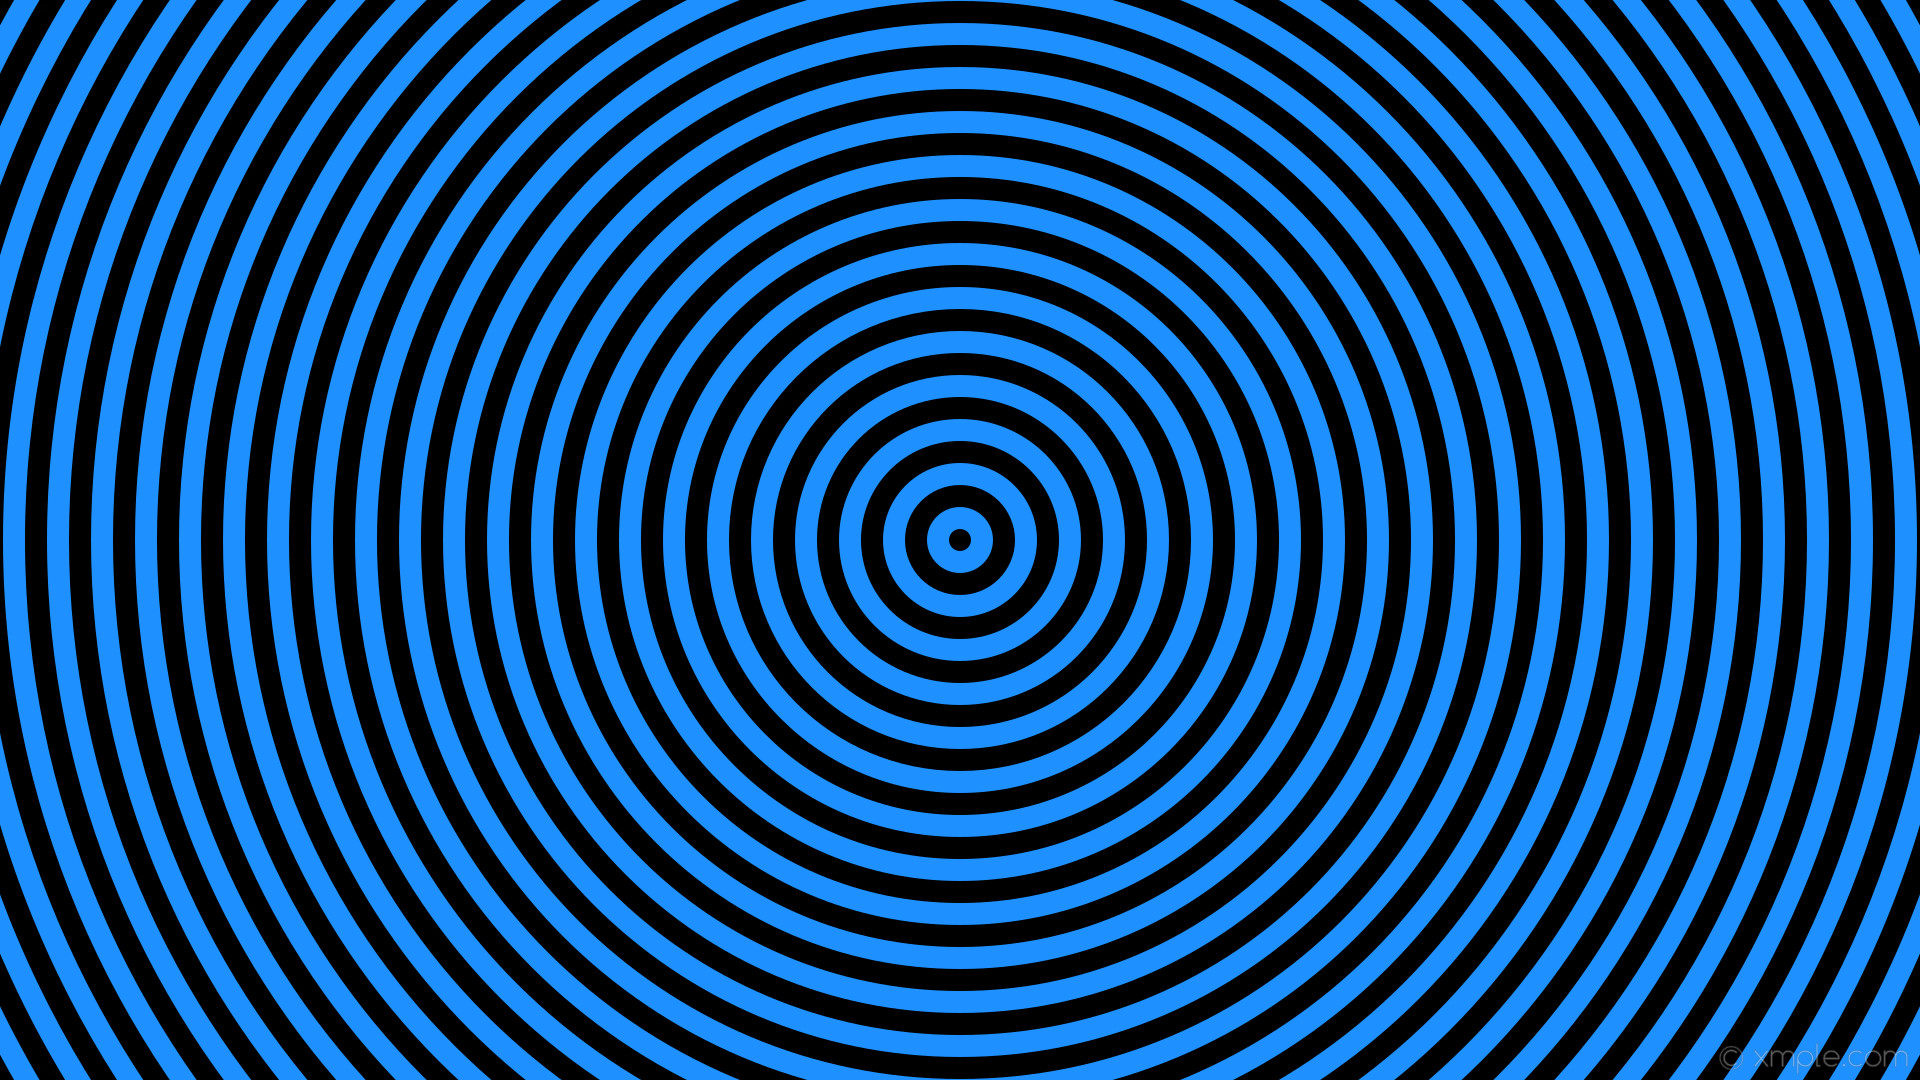 wallpaper blue black circles concentric rings dodger blue #1e90ff #000000  22px 50% 50